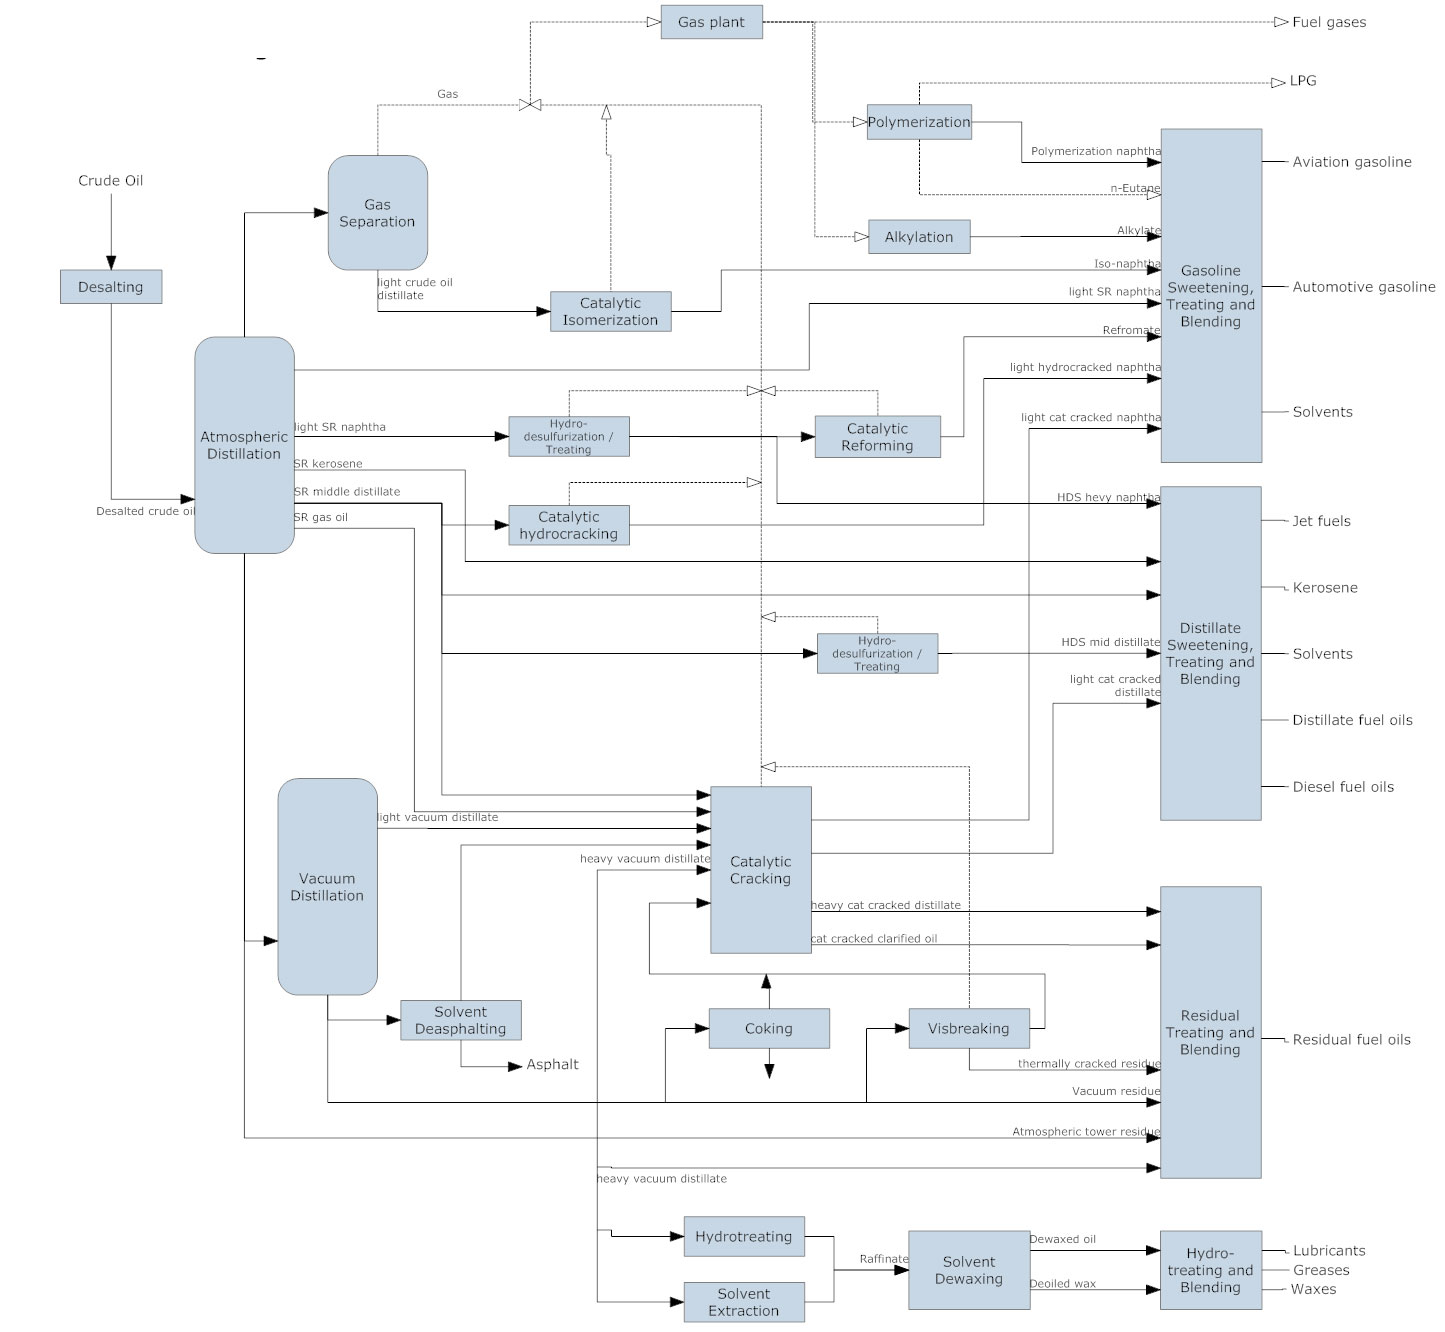 flowchart types and flowchart uses